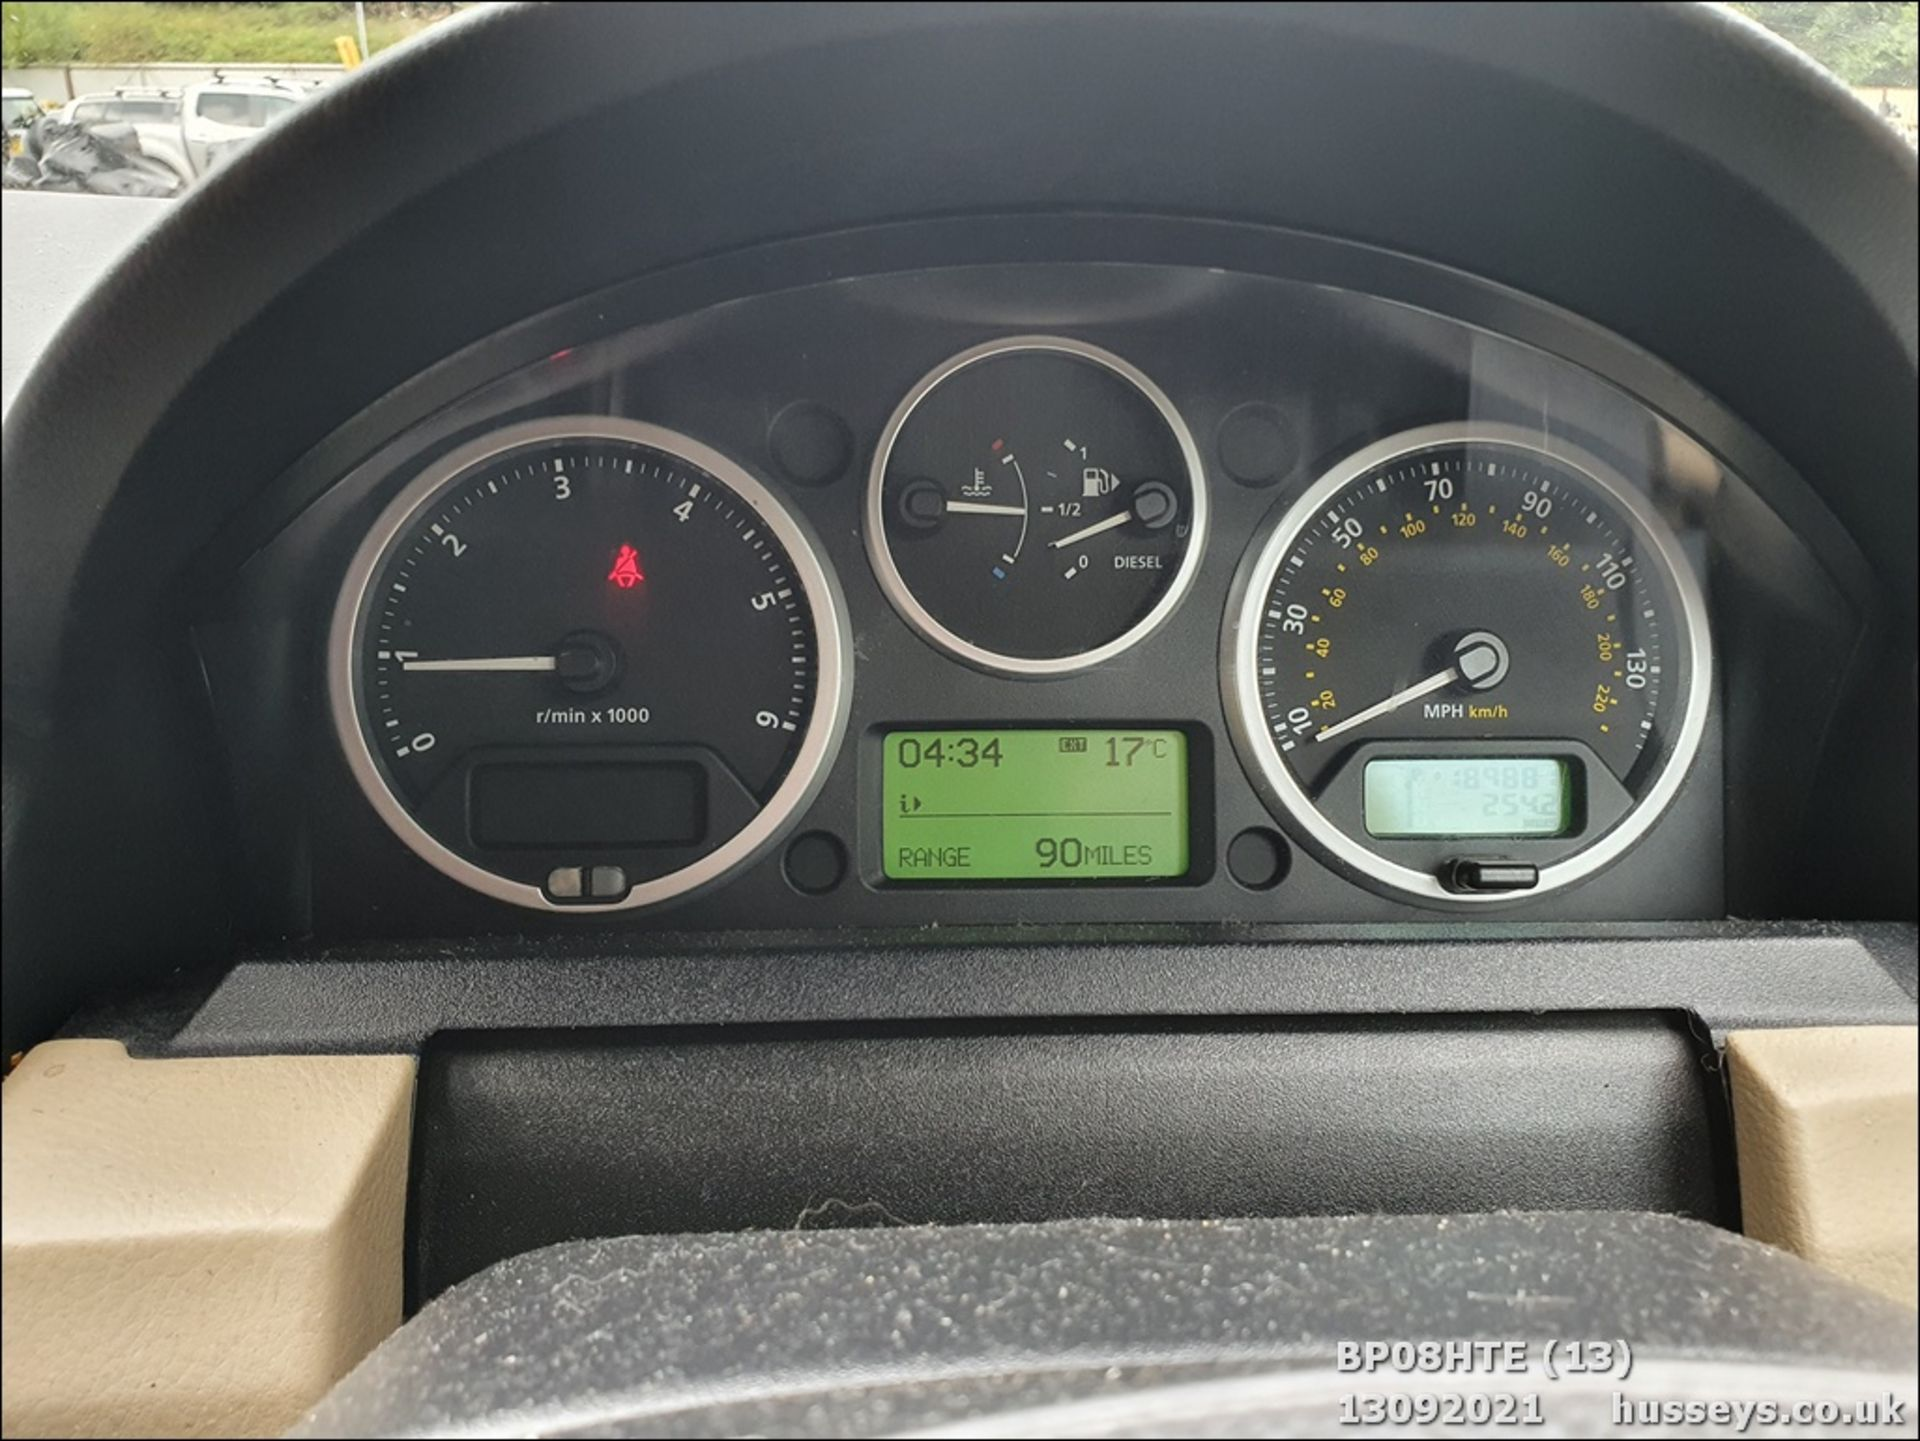 08/08 LAND ROVER DISCOVERY TDV6 SE A - 2720cc 5dr Estate (Brown, 190k) - Image 13 of 18